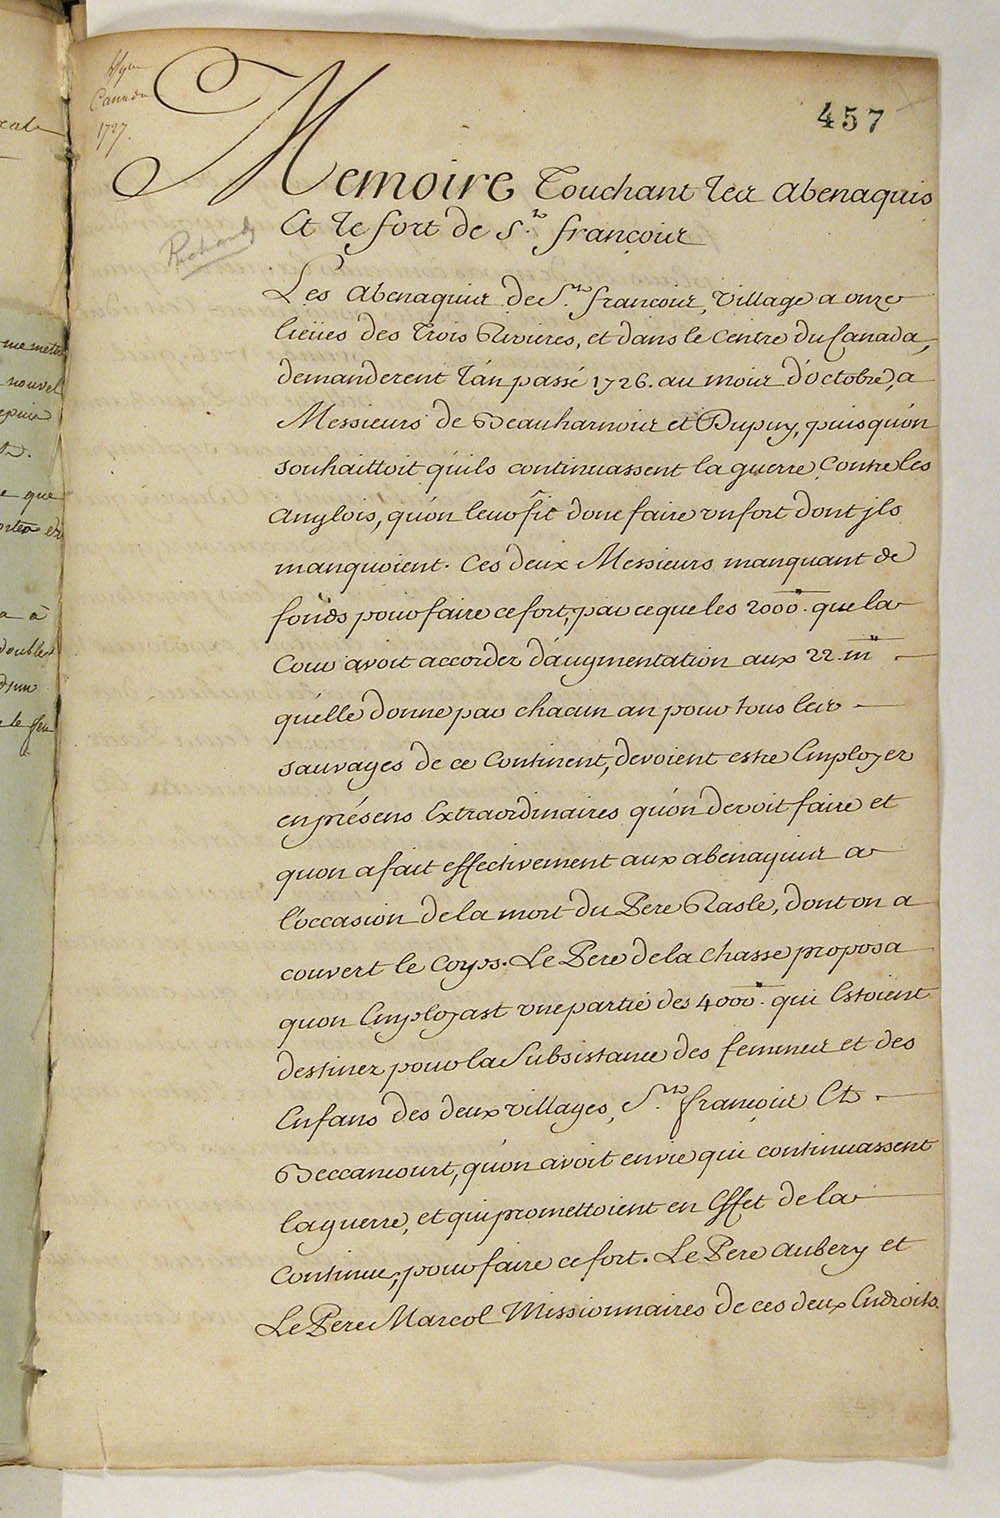 [Report concerning the Abenaki and the war against the English], 1727. FR CAOM COL F3 2 fol. 457-459vo